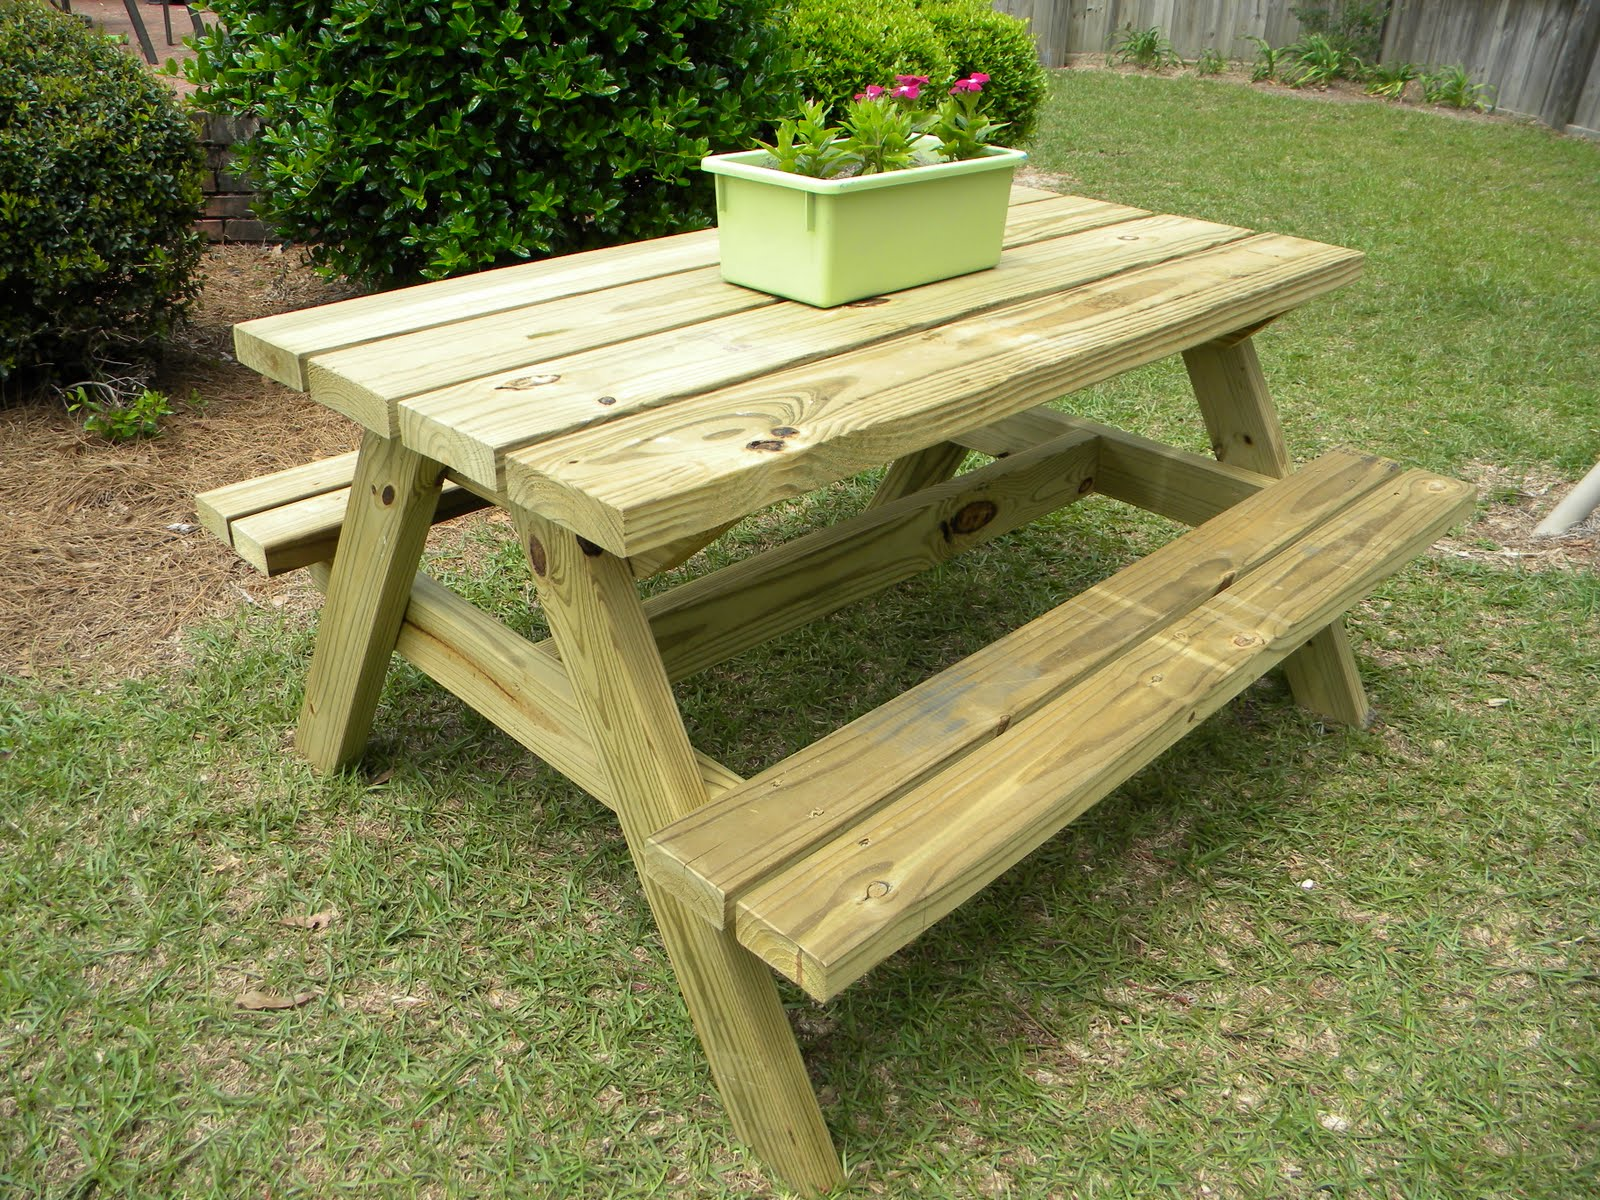 Guide to get picnic table with built in cooler plans the for Bancas de jardin